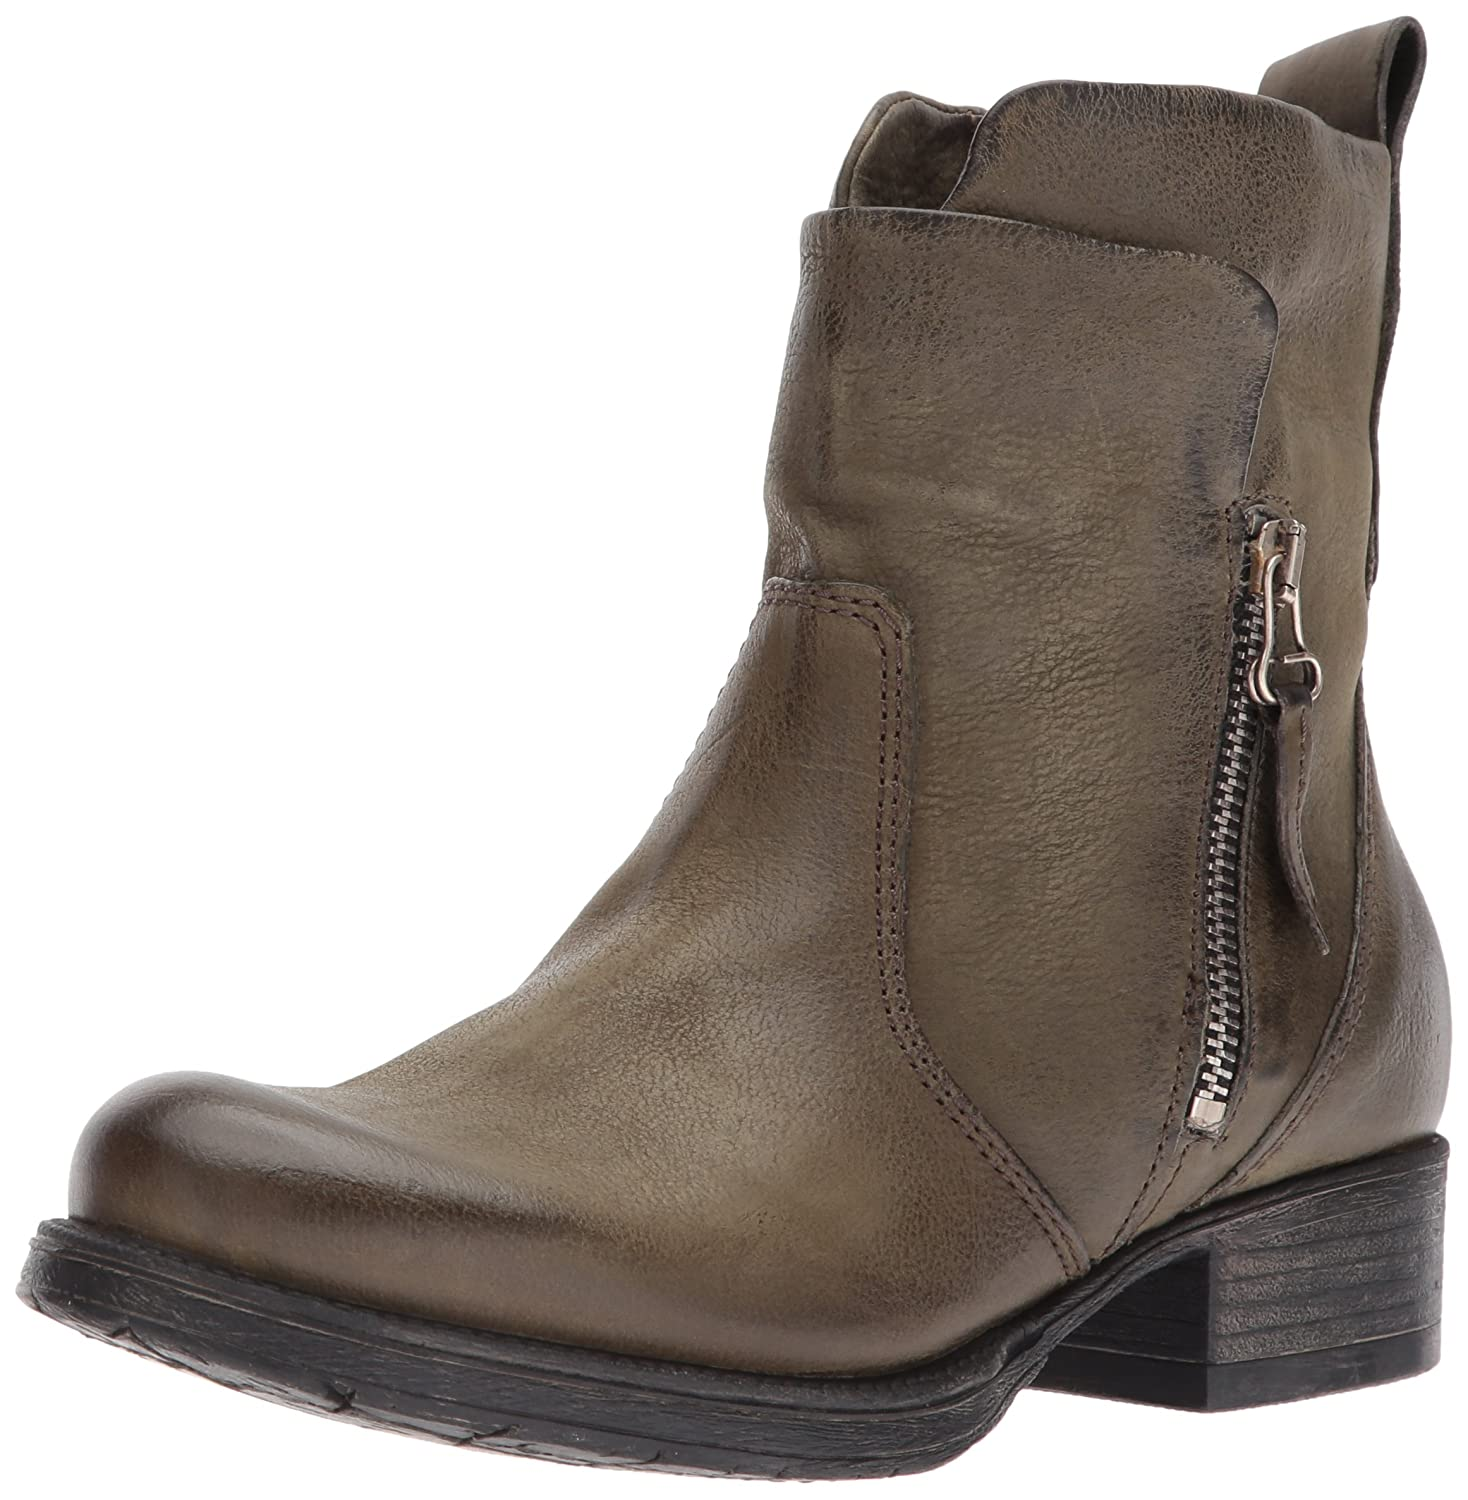 Miz Mooz Women's Nimble Ankle Boot B06XS489P1 42 M EU (10.5-11 US)|Army